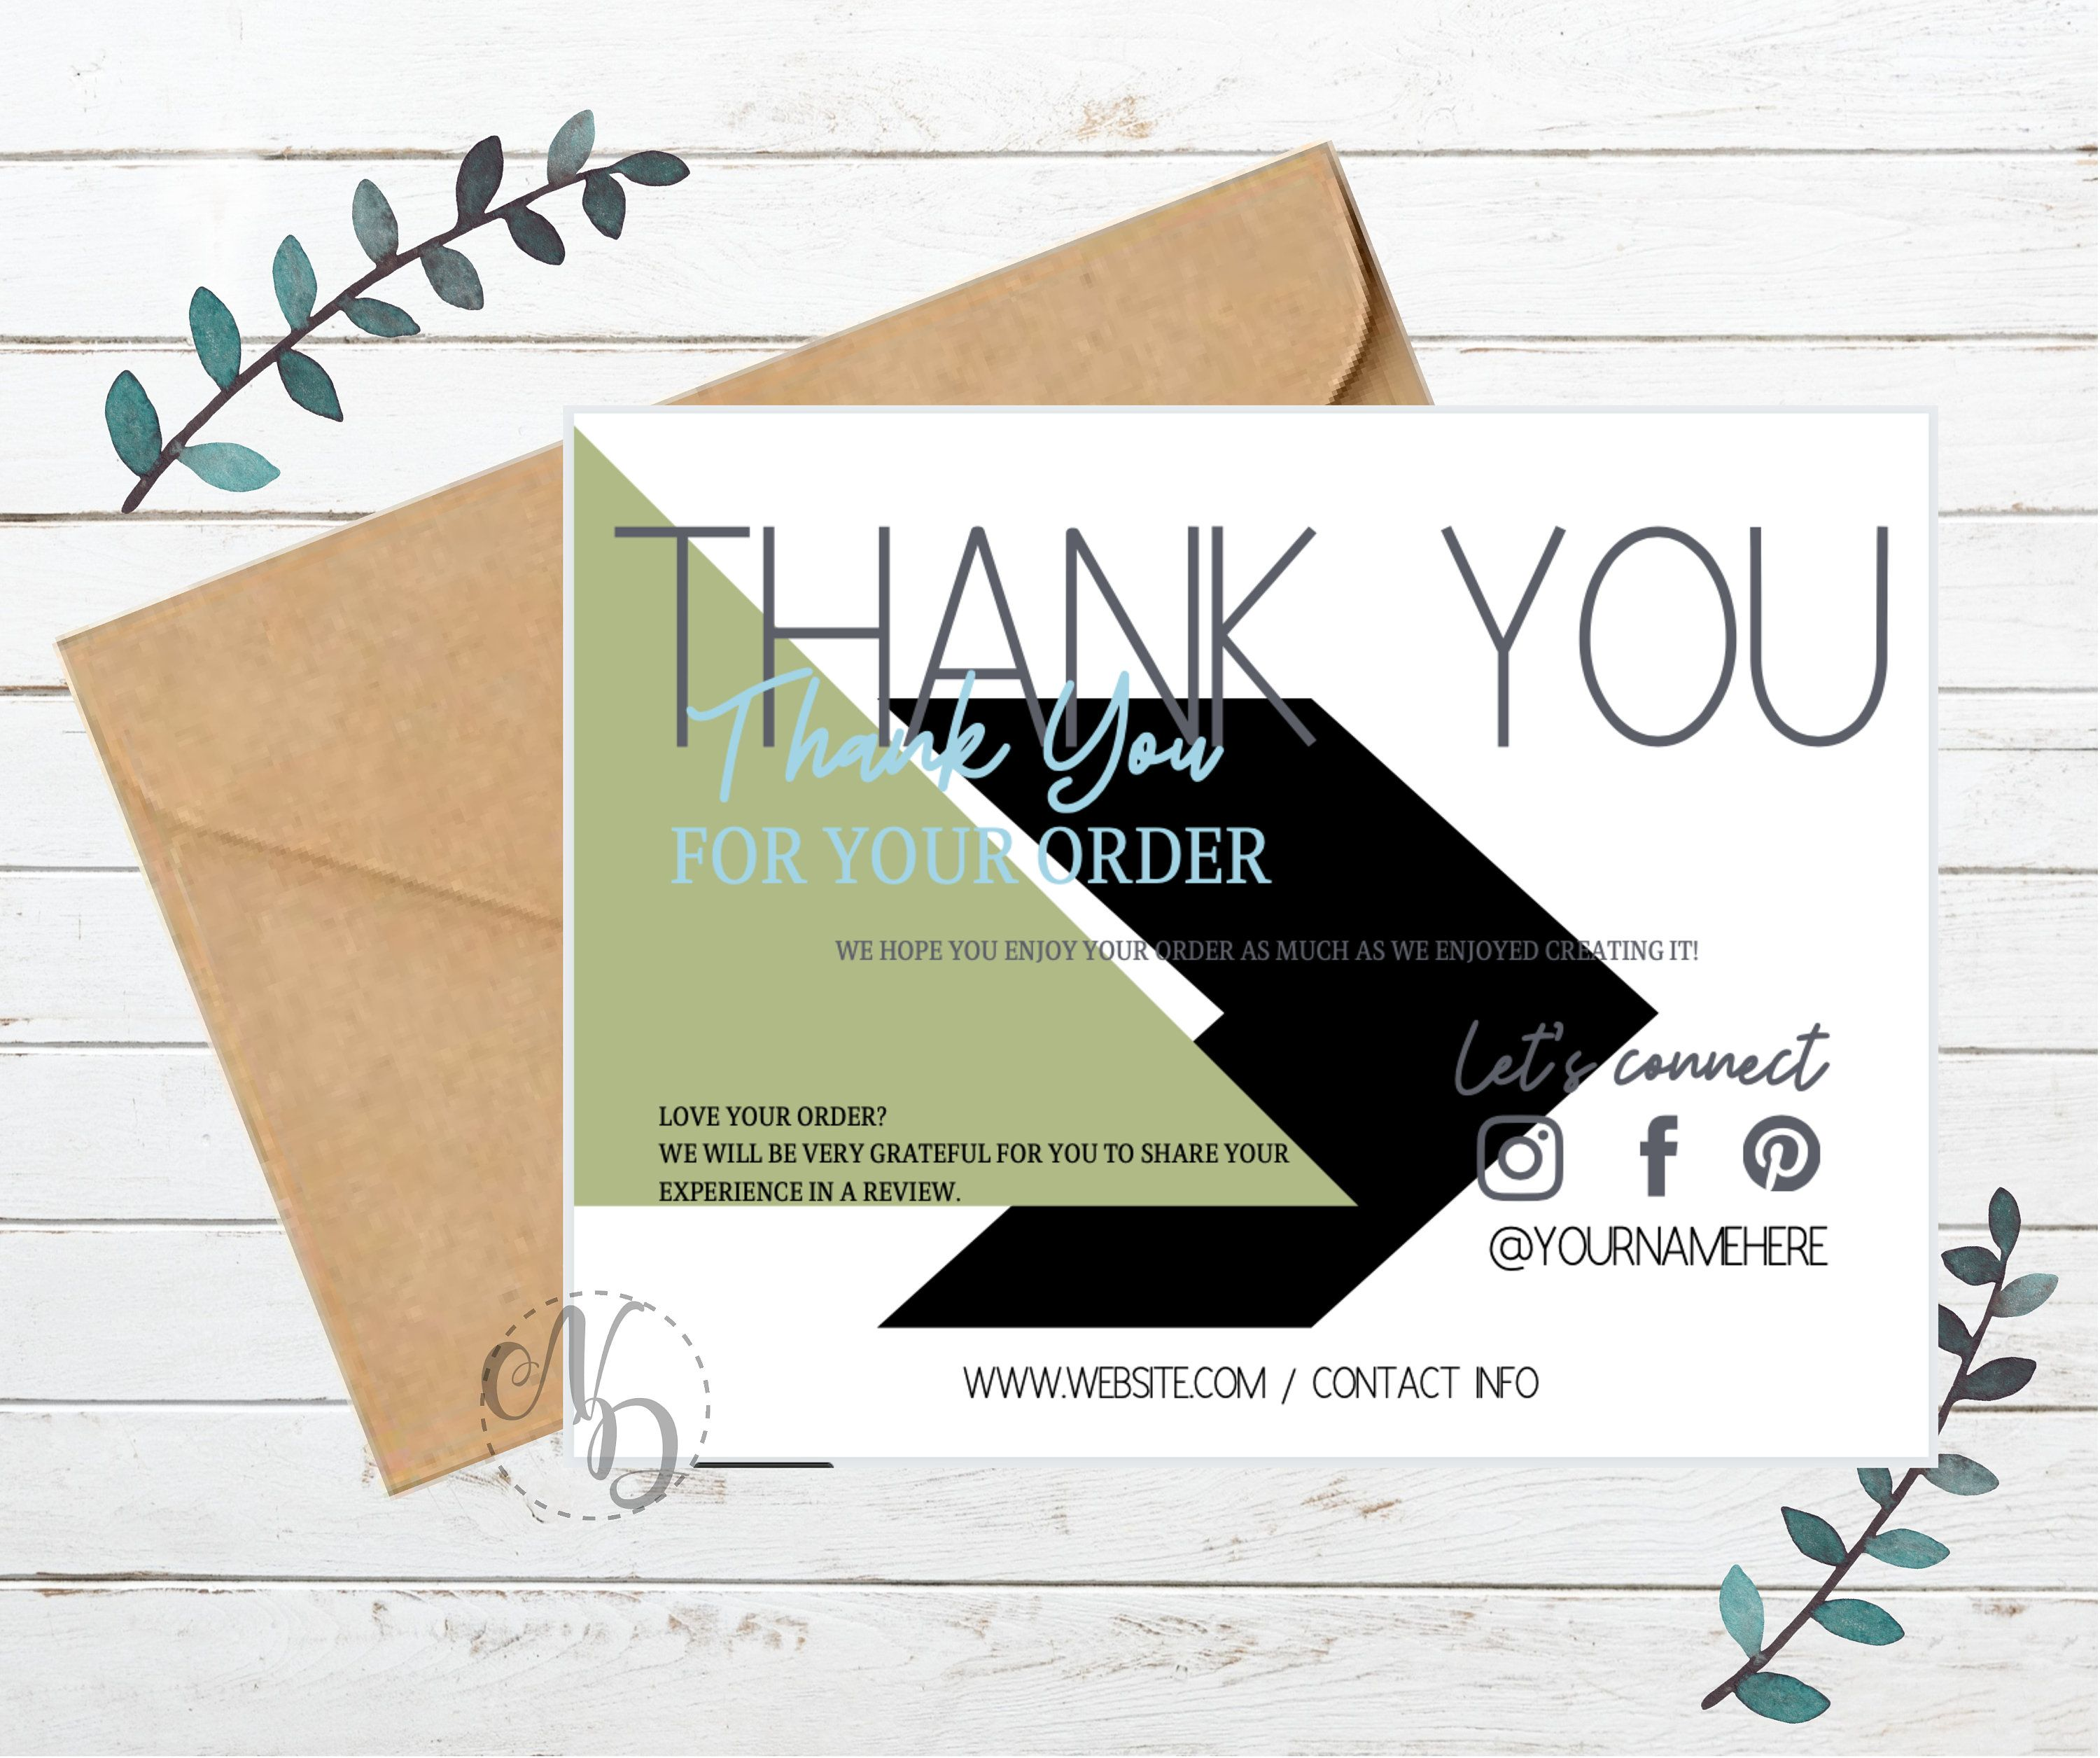 Customizable Thank You Card Template Small Business Editable Canva Instant Download By Natashadivon On Etsy Agendas Buenos Dias